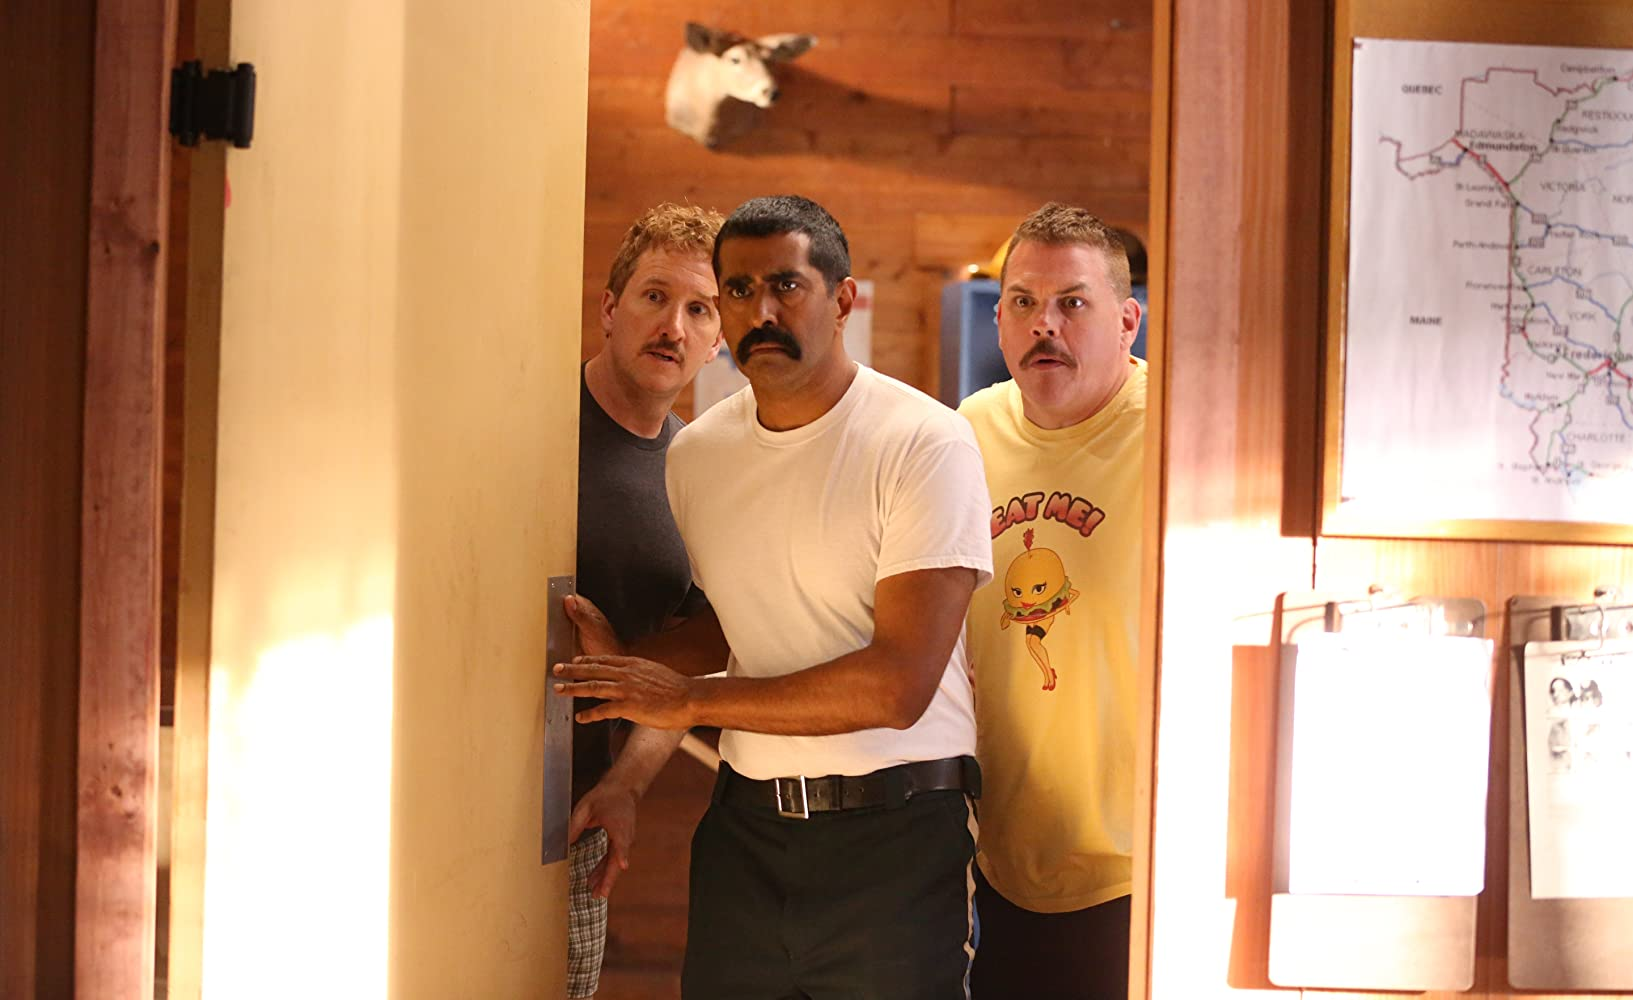 Jay Chandrasekhar, Kevin Heffernan, Paul Soter, and Super Troopers in Super Troopers 2 (2018)